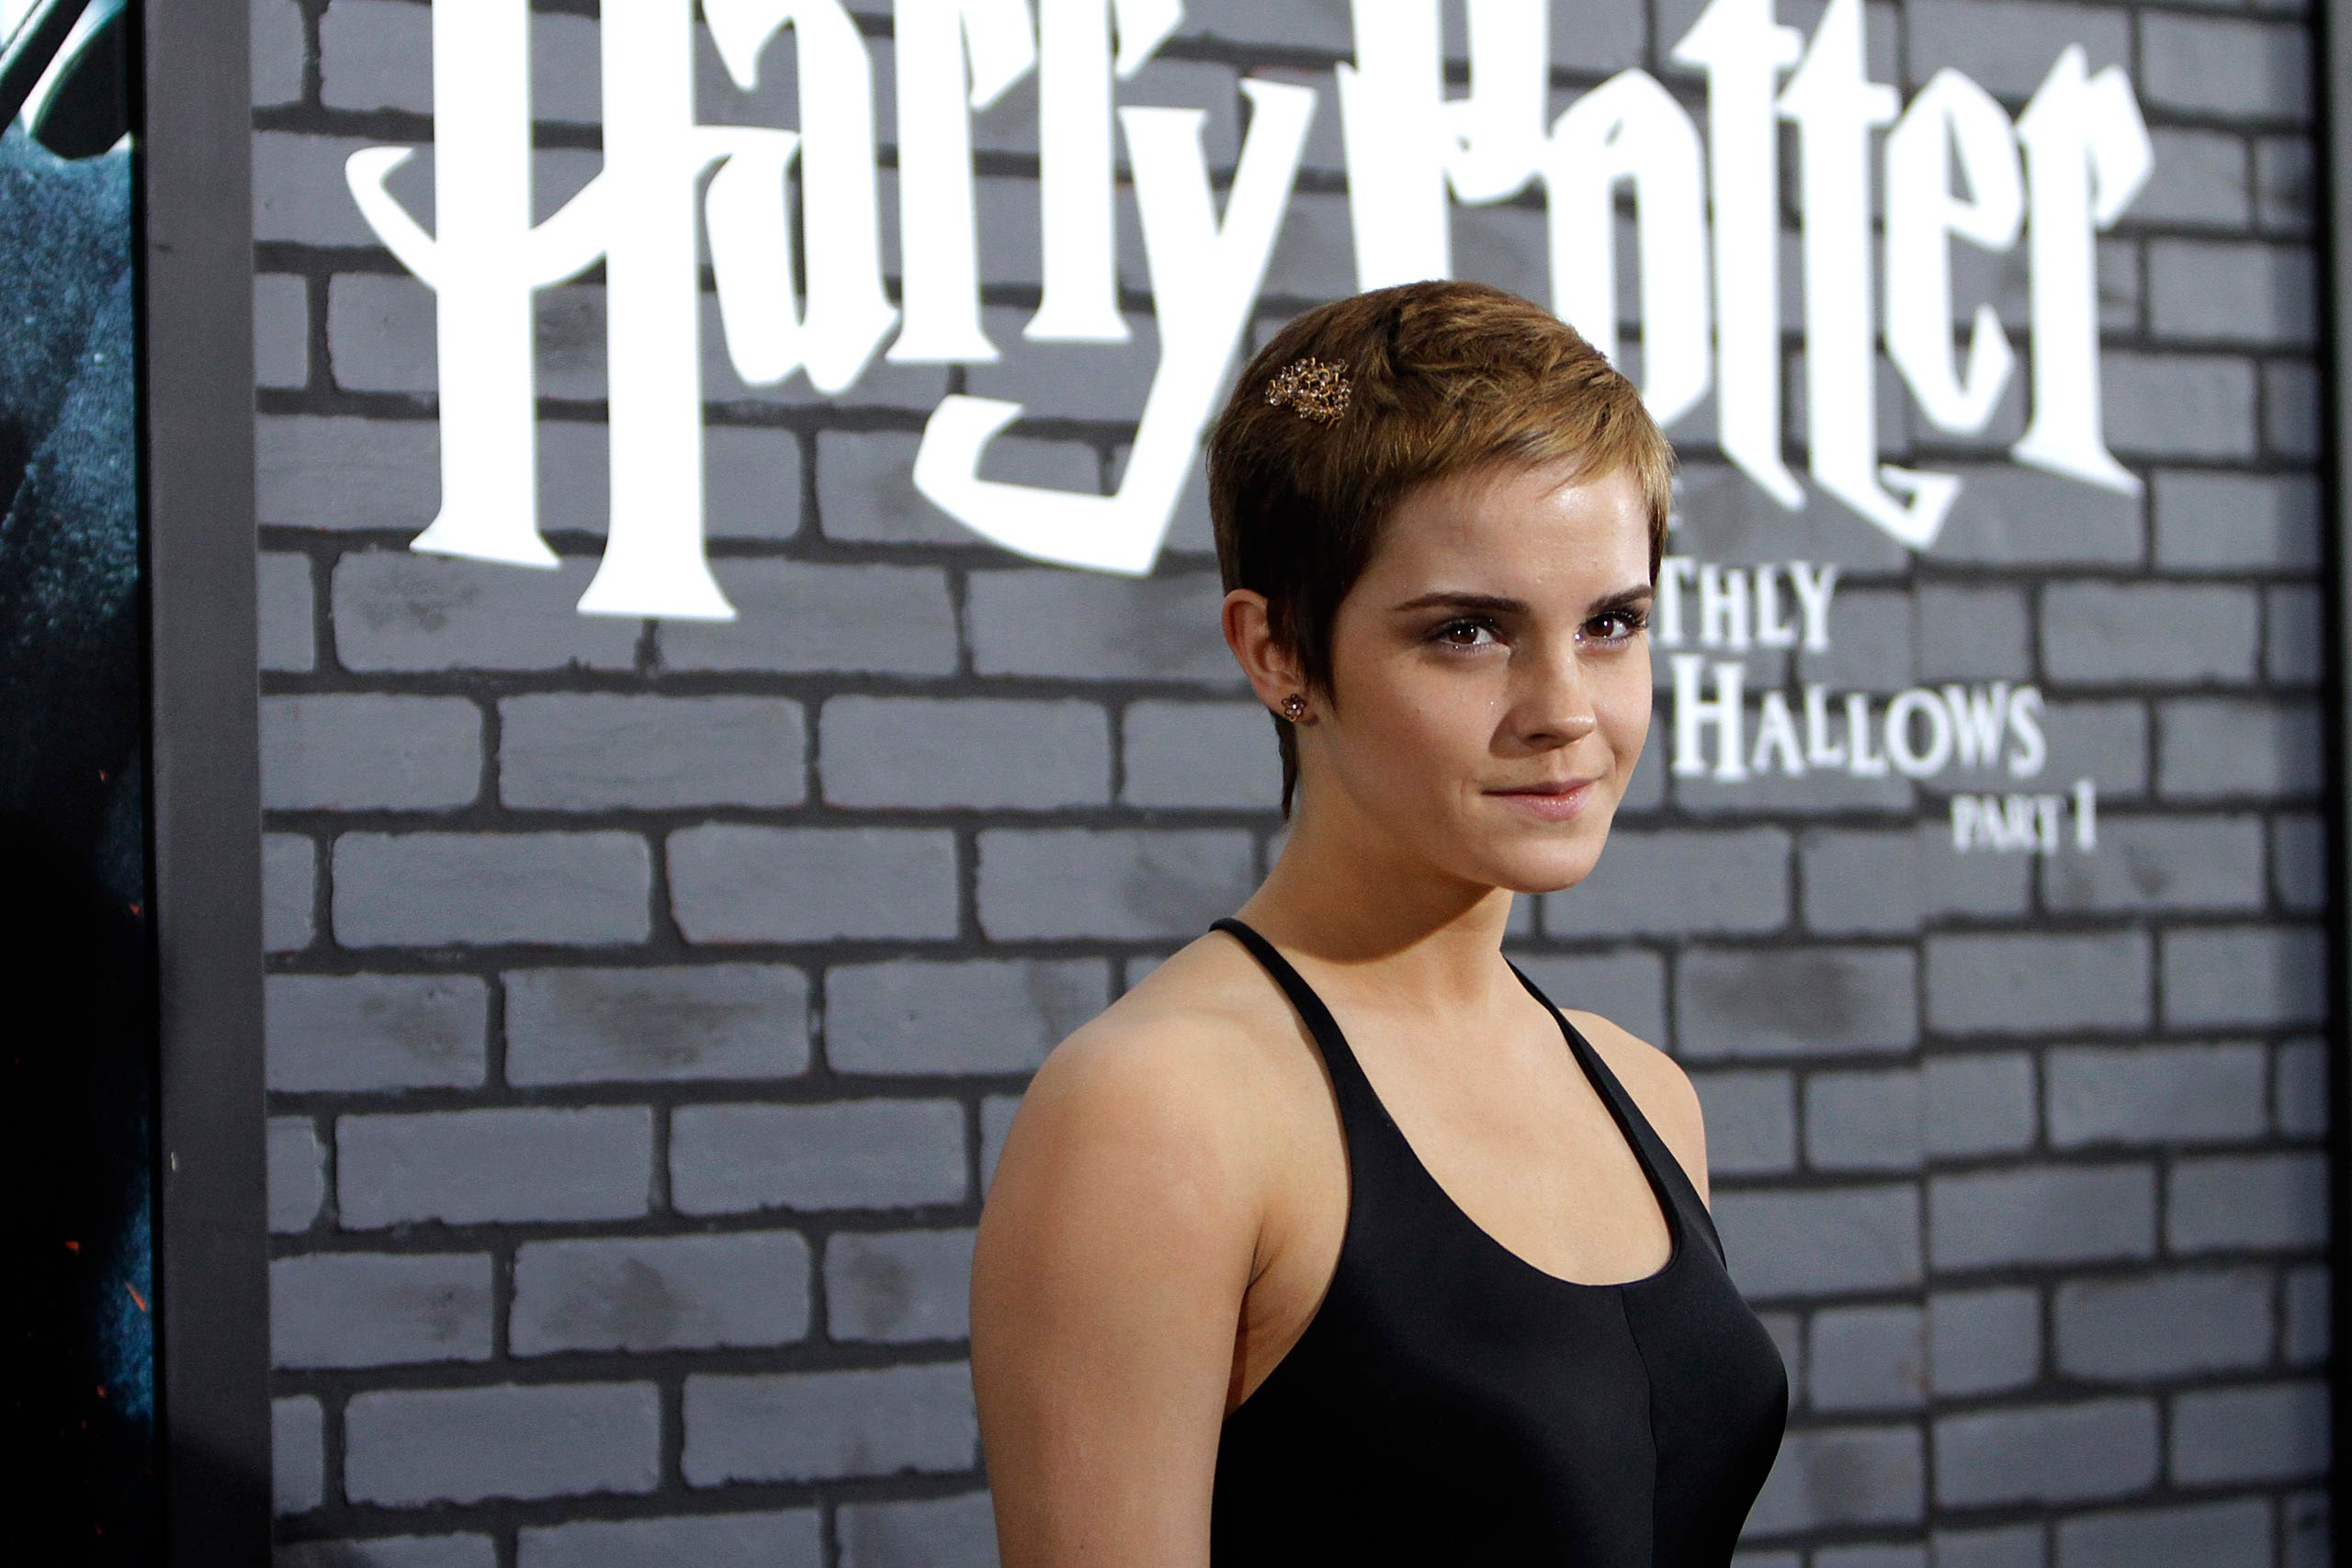 Emma Watson attends the <i>Harry Potter and the Deadly Hallows - Part 1</i> NYC premiere at Alice Tully Hall in New York in 2010.